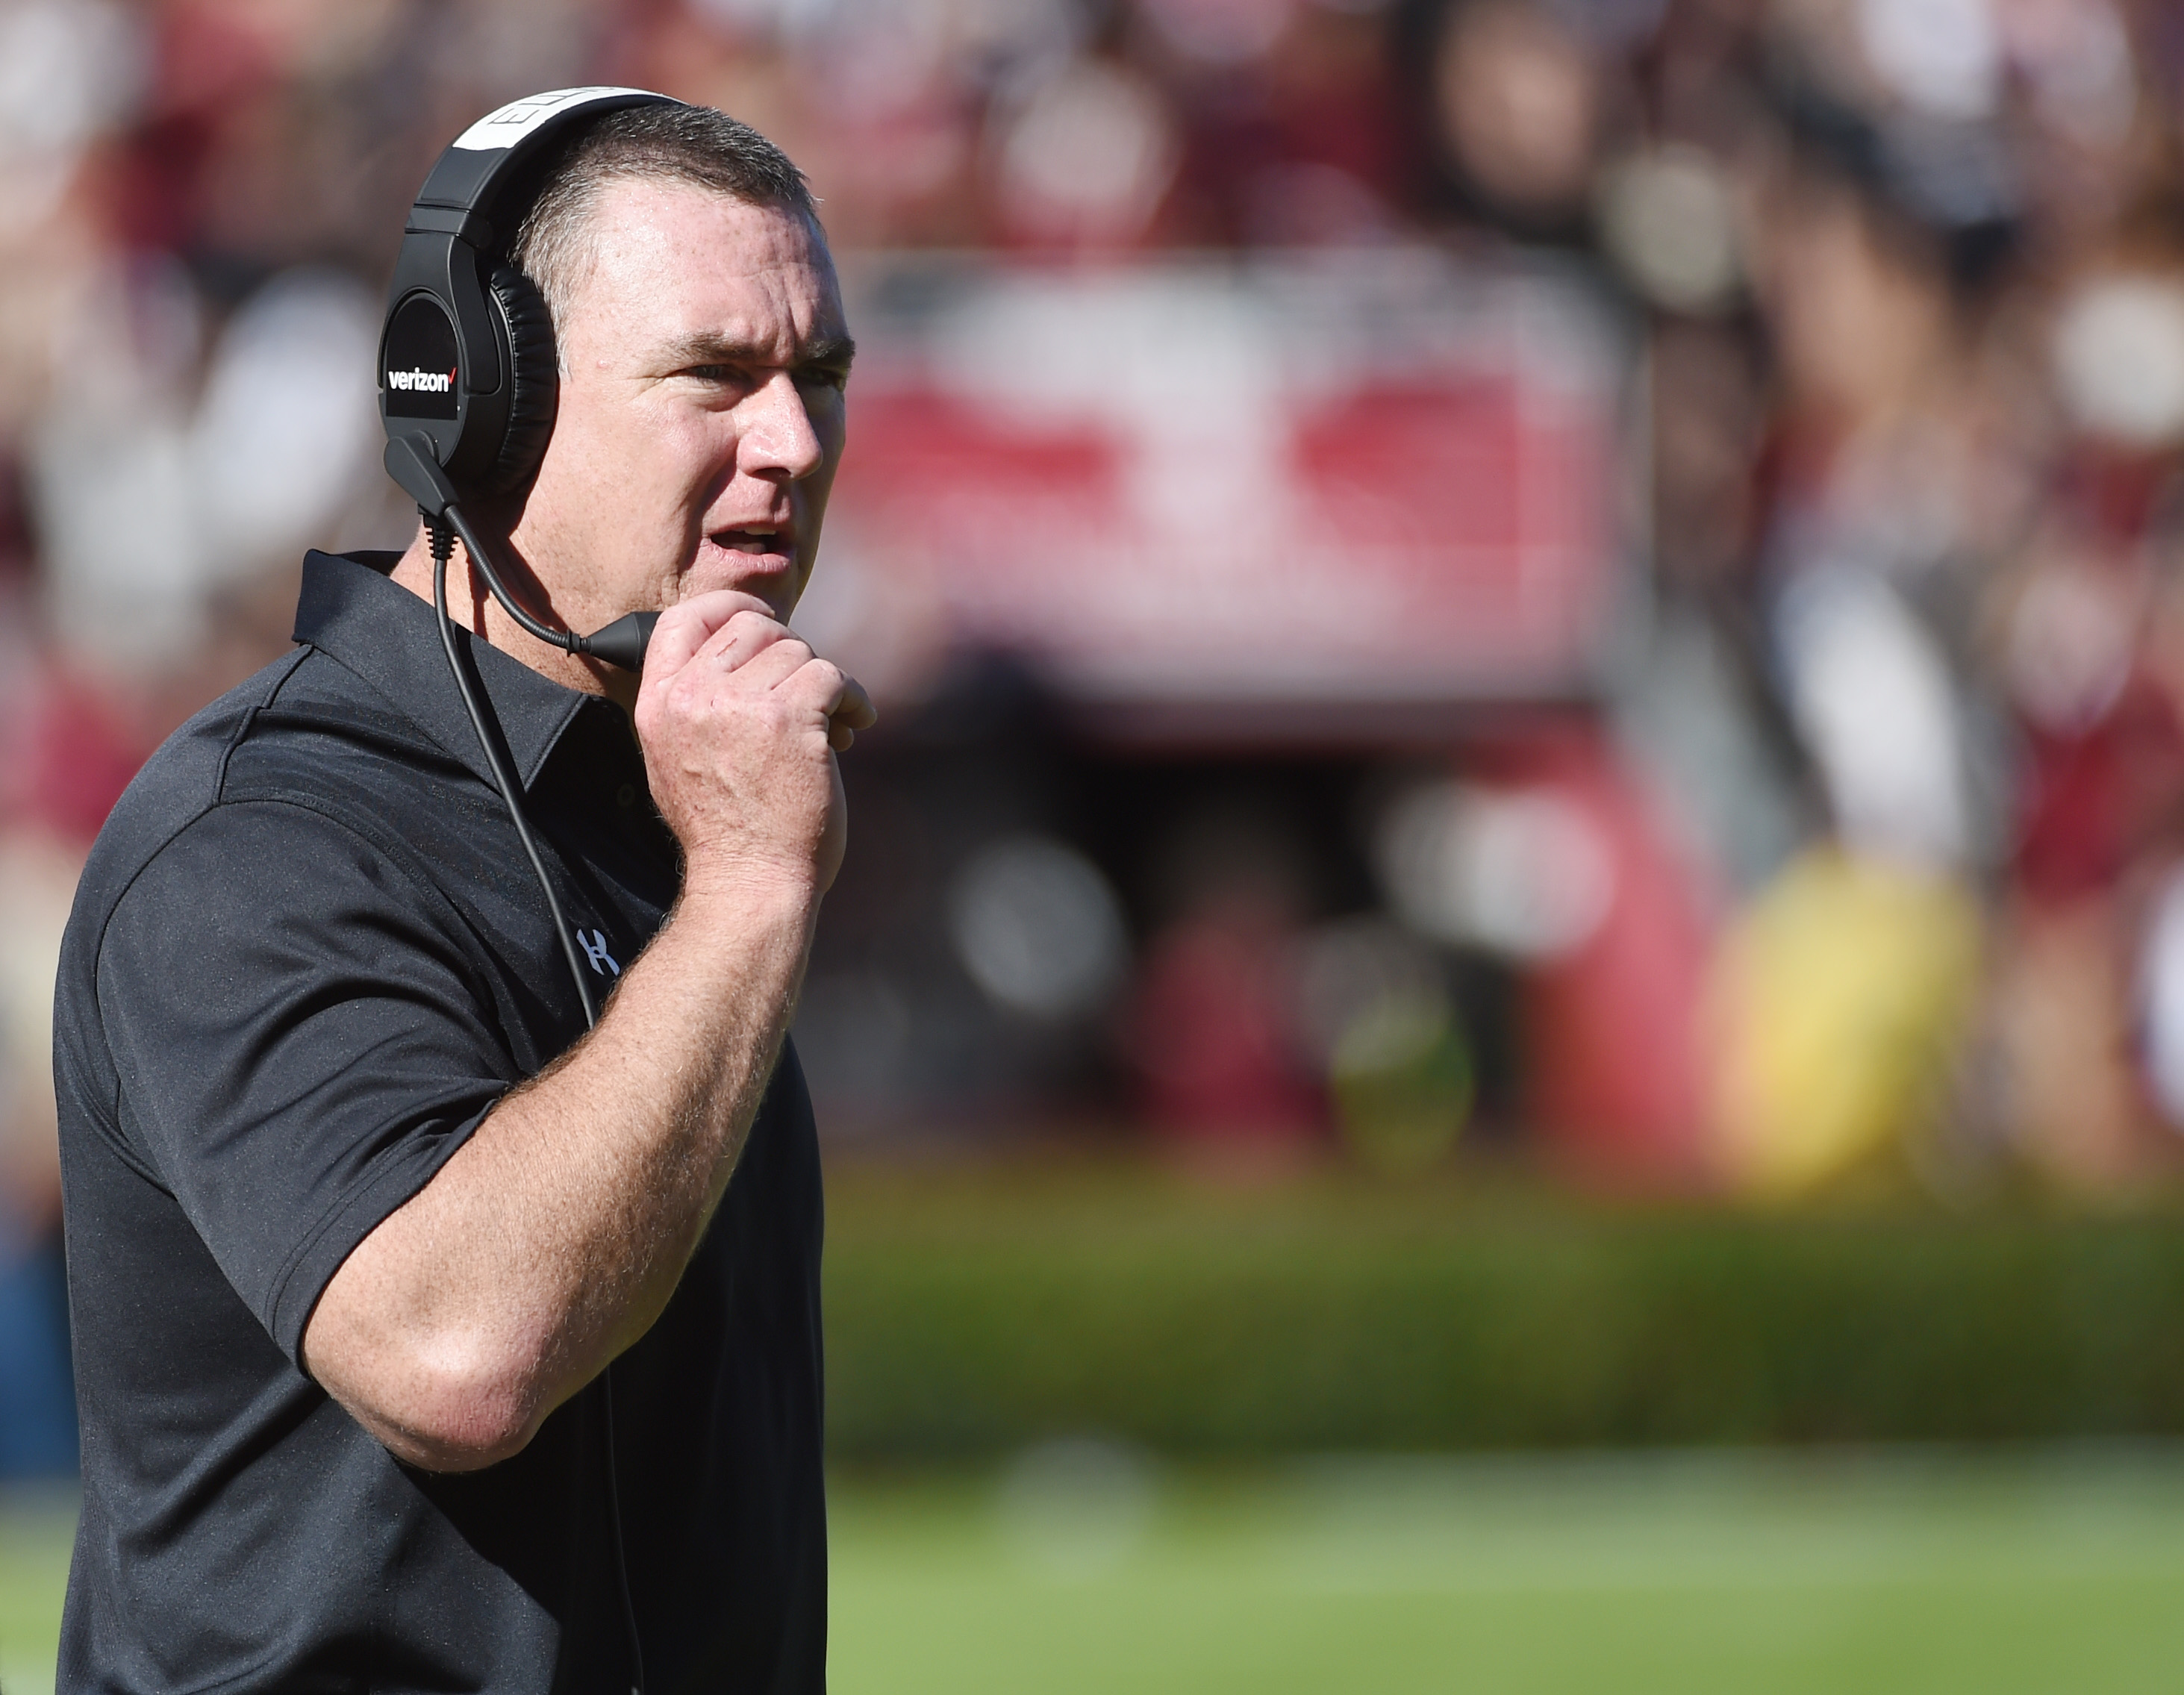 South Carolina interim head coach Shawn Elliott looks on from the sideline during the first half of an NCAA college football game against Florida, Saturday, Nov. 14, 2015, in Columbia, S.C. (AP Photo/Rainier Ehrhardt)